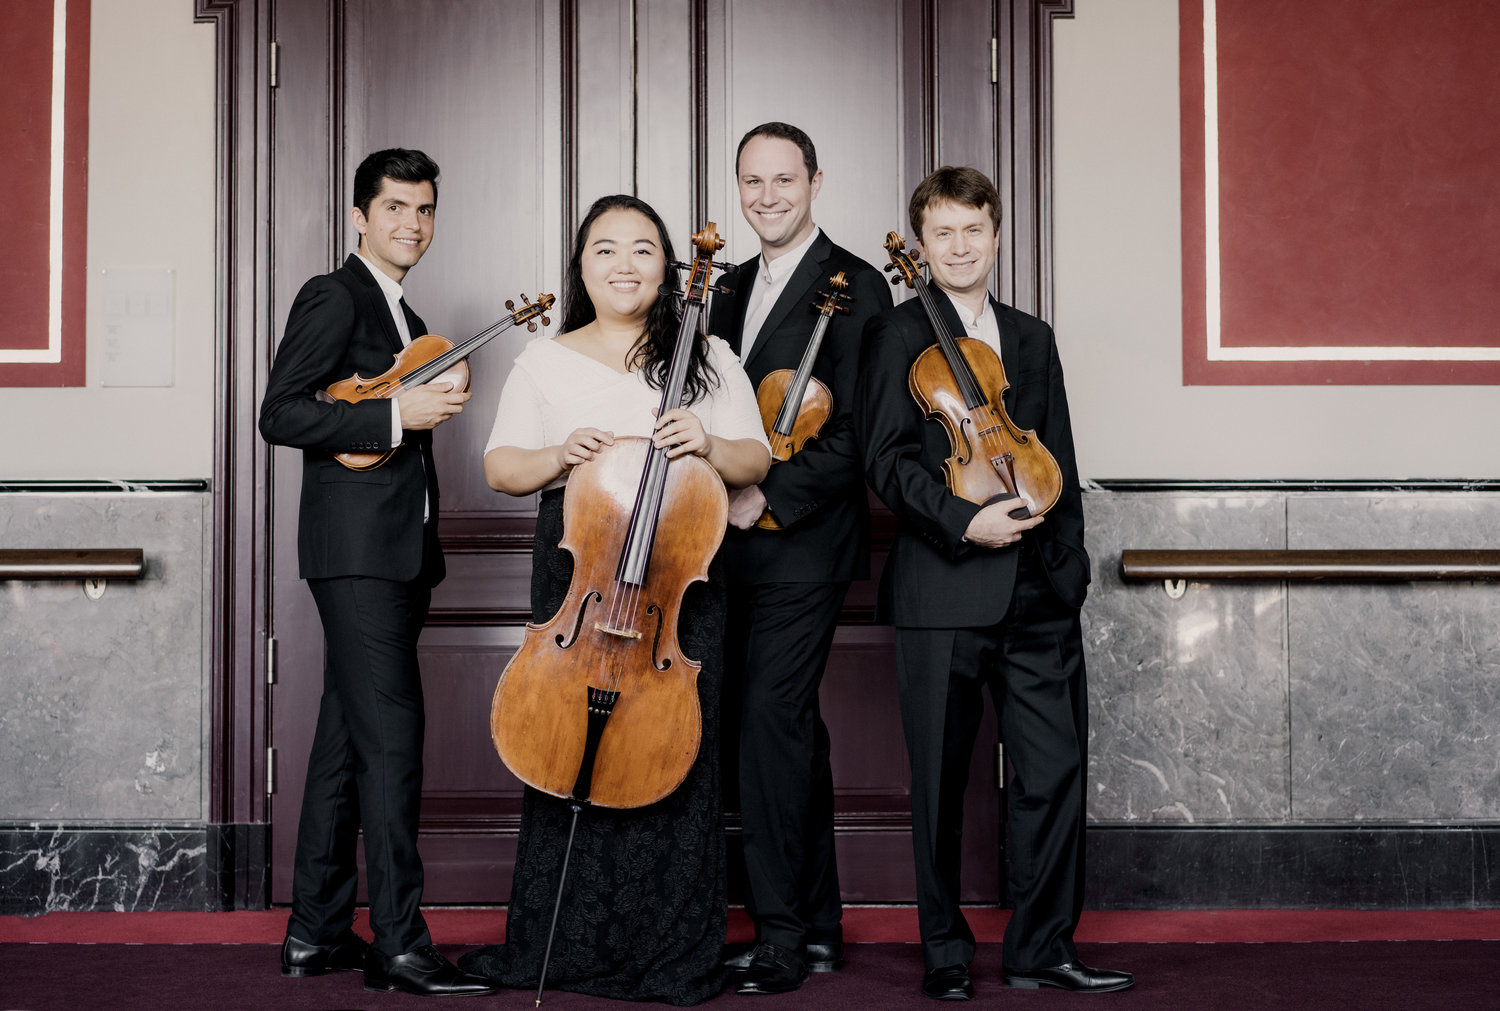 Public Concerts Resume at PS21 in Chatham, New York—Second Concert: Beethoven by the Calidore String Quartet